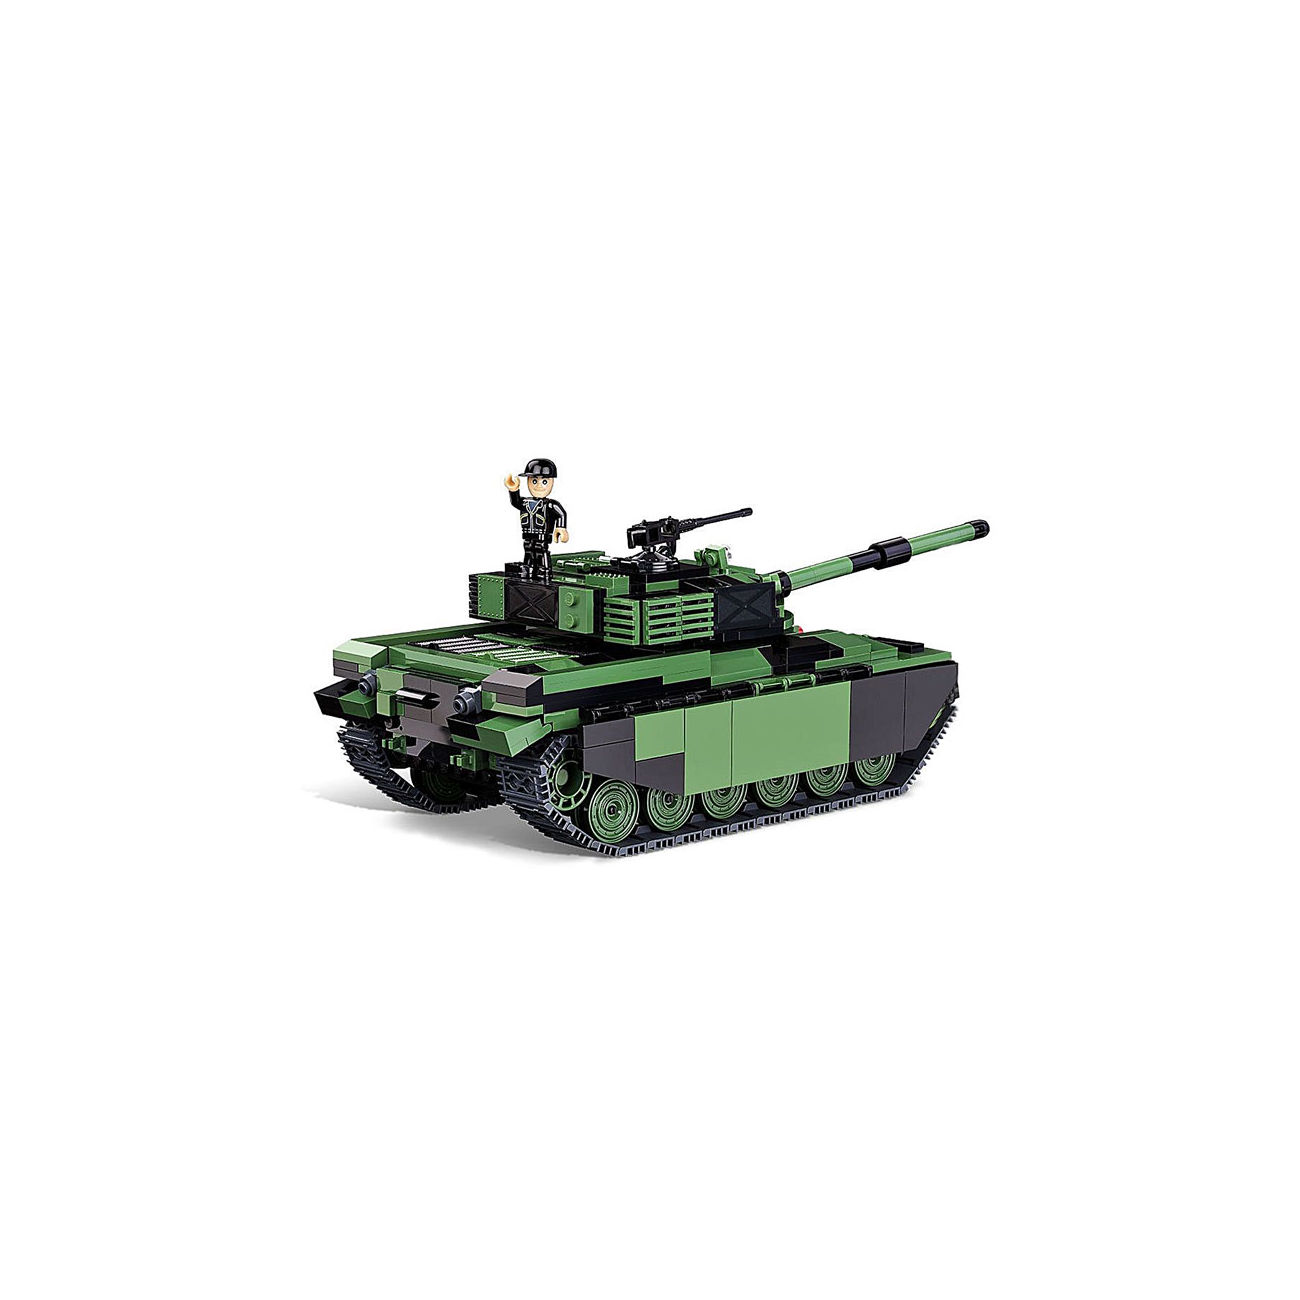 Cobi The Tank Museum Small Army Bausatz Panzer Chieftain 620 Teile 2494 1